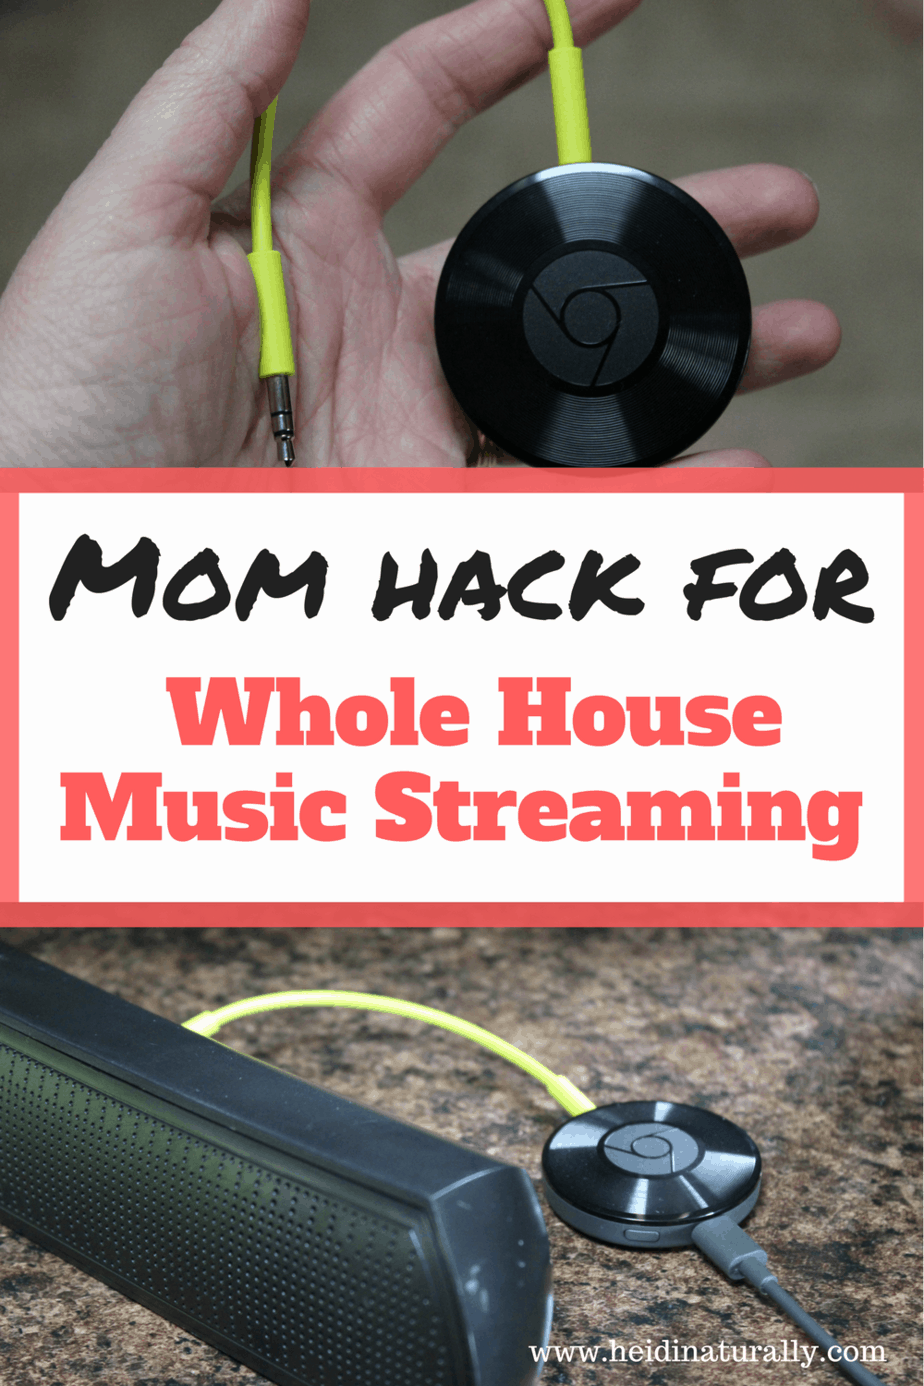 Learn how to use a wireless device to stream music all over your house. Find out how this non-techie mom easily installed Chromecast Audio in her home.